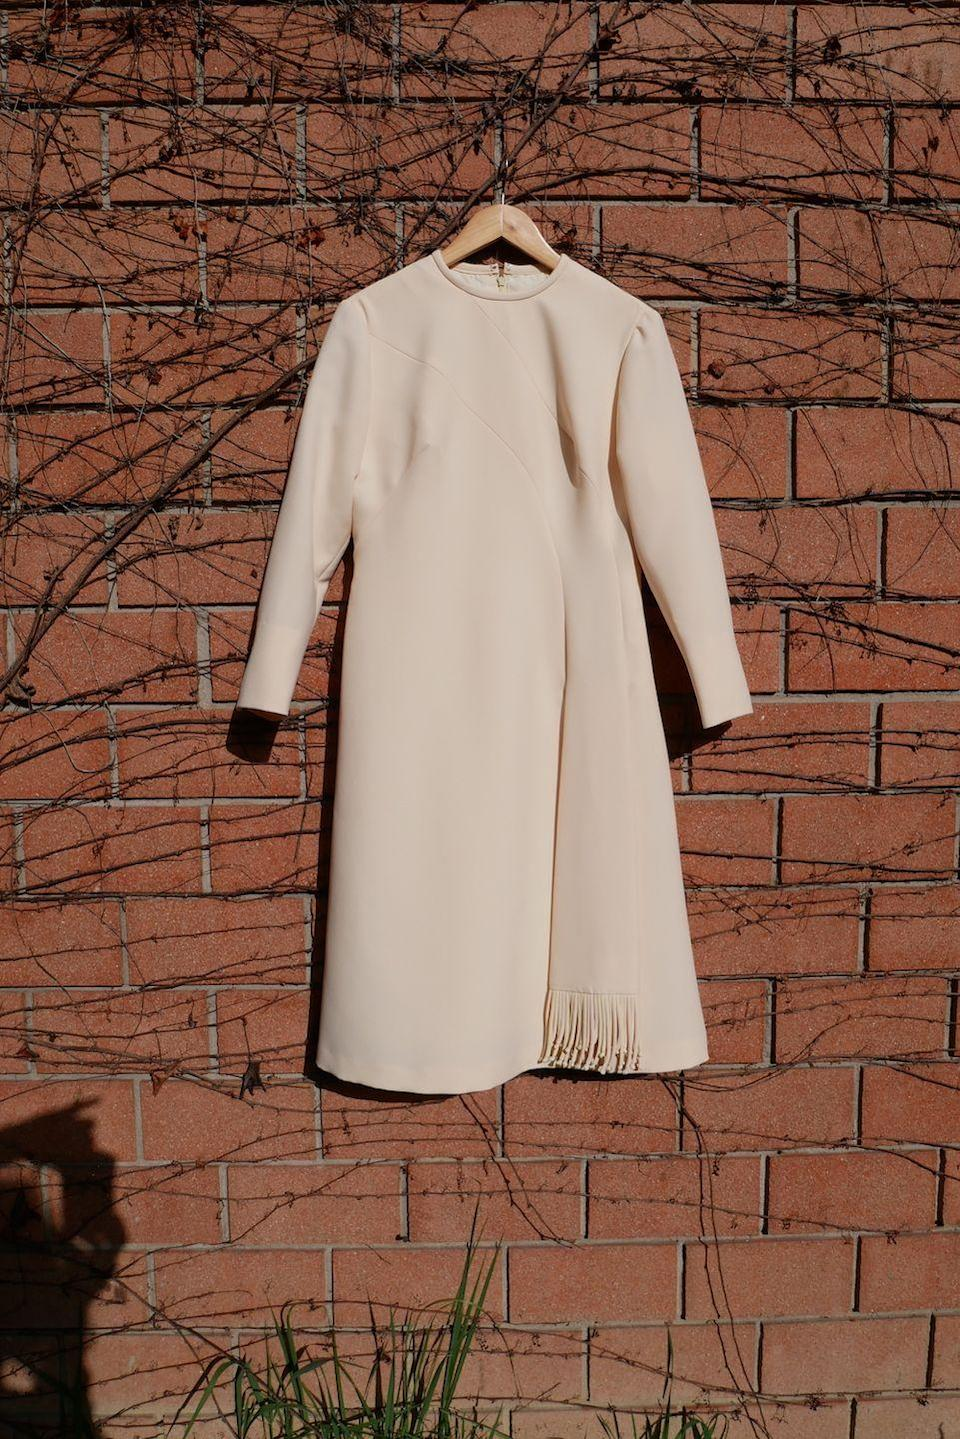 """<p>'I offer a carefully curated selection of vintage, trying to combine minimal pieces with statement ones, while keeping it harmonious,' founder Raluca Smadu said of her vintage shop D'autrefois Vintage.</p><p>'Alongside timeless classics, I aim to have my shop stocked with on the trend pieces, with a focus on the streetwear. I'm always on the hunt for designer pieces and I want my shop to be the living proof that quality, affordability, sustainability and style can really go hand in hand.'</p><p><a class=""""link rapid-noclick-resp"""" href=""""https://www.etsy.com/shop/DAutrefoisVintage"""" rel=""""nofollow noopener"""" target=""""_blank"""" data-ylk=""""slk:SHOP D'AUTREFOIS VINTAGE NOW"""">SHOP D'AUTREFOIS VINTAGE NOW</a></p>"""